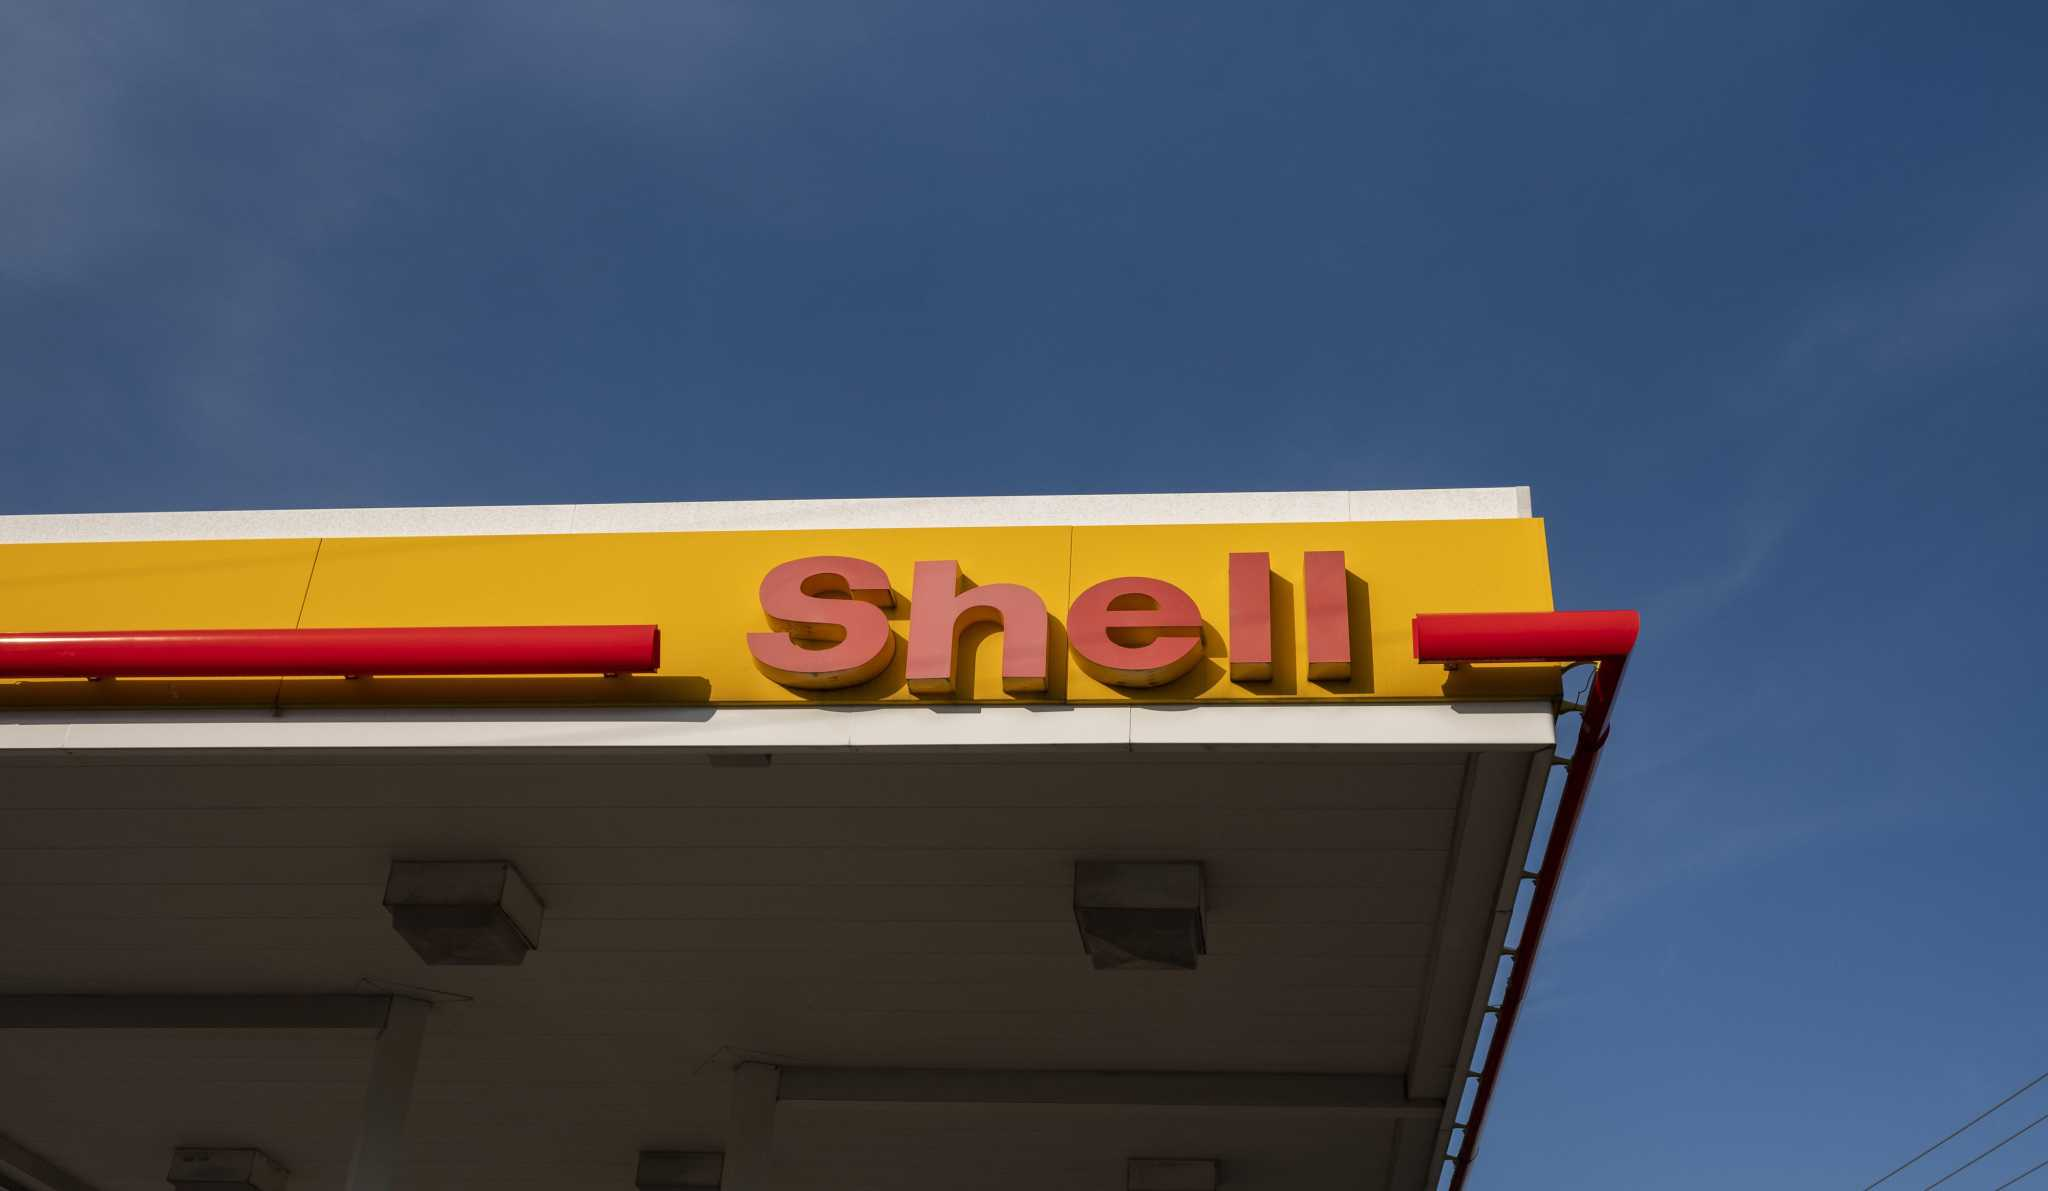 Shell hoping voluntary severances will help weather oil crisis